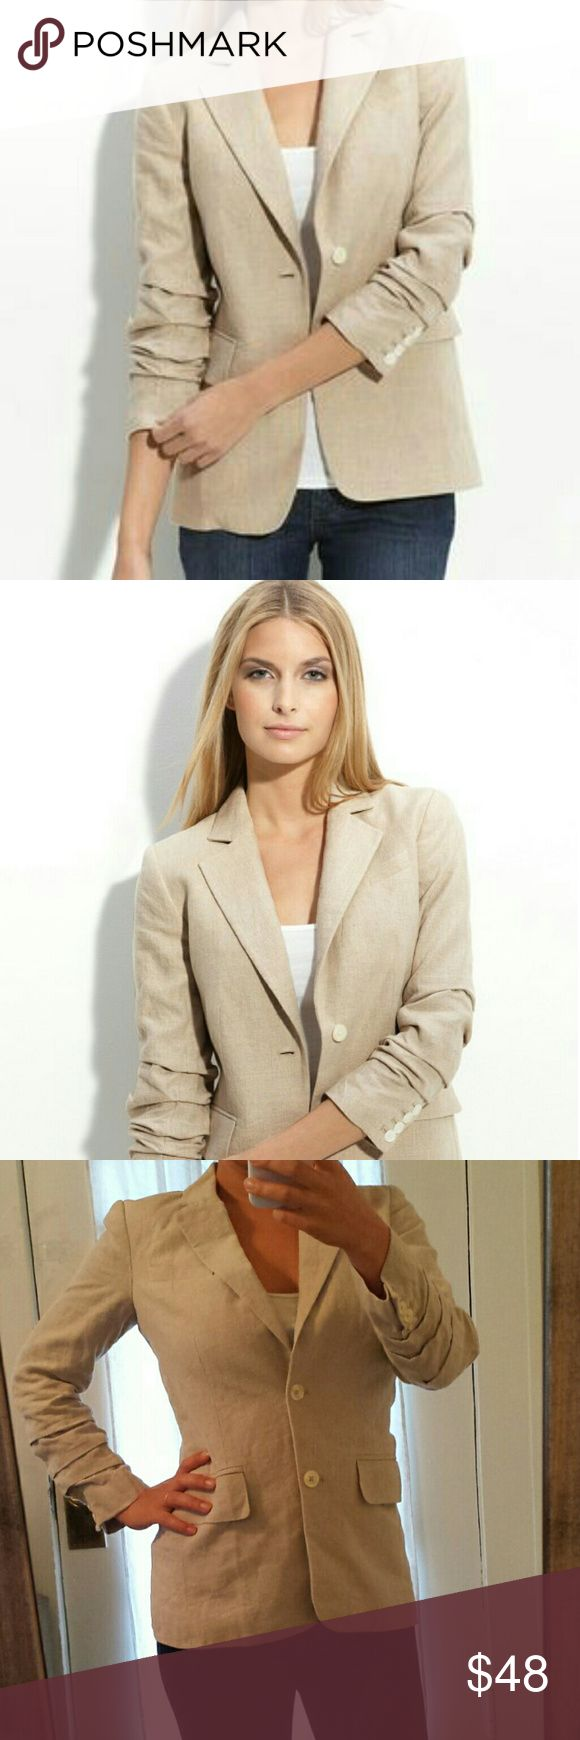 Michael Kors Natural Tan Linen Blazer Work Casual This is a beautiful blazer with an excellent fit.  Wear to work or with jeans and a tshirt. Sleeves are 3/4 length and ruched. Michael by Michael Kors Jackets & Coats Blazers